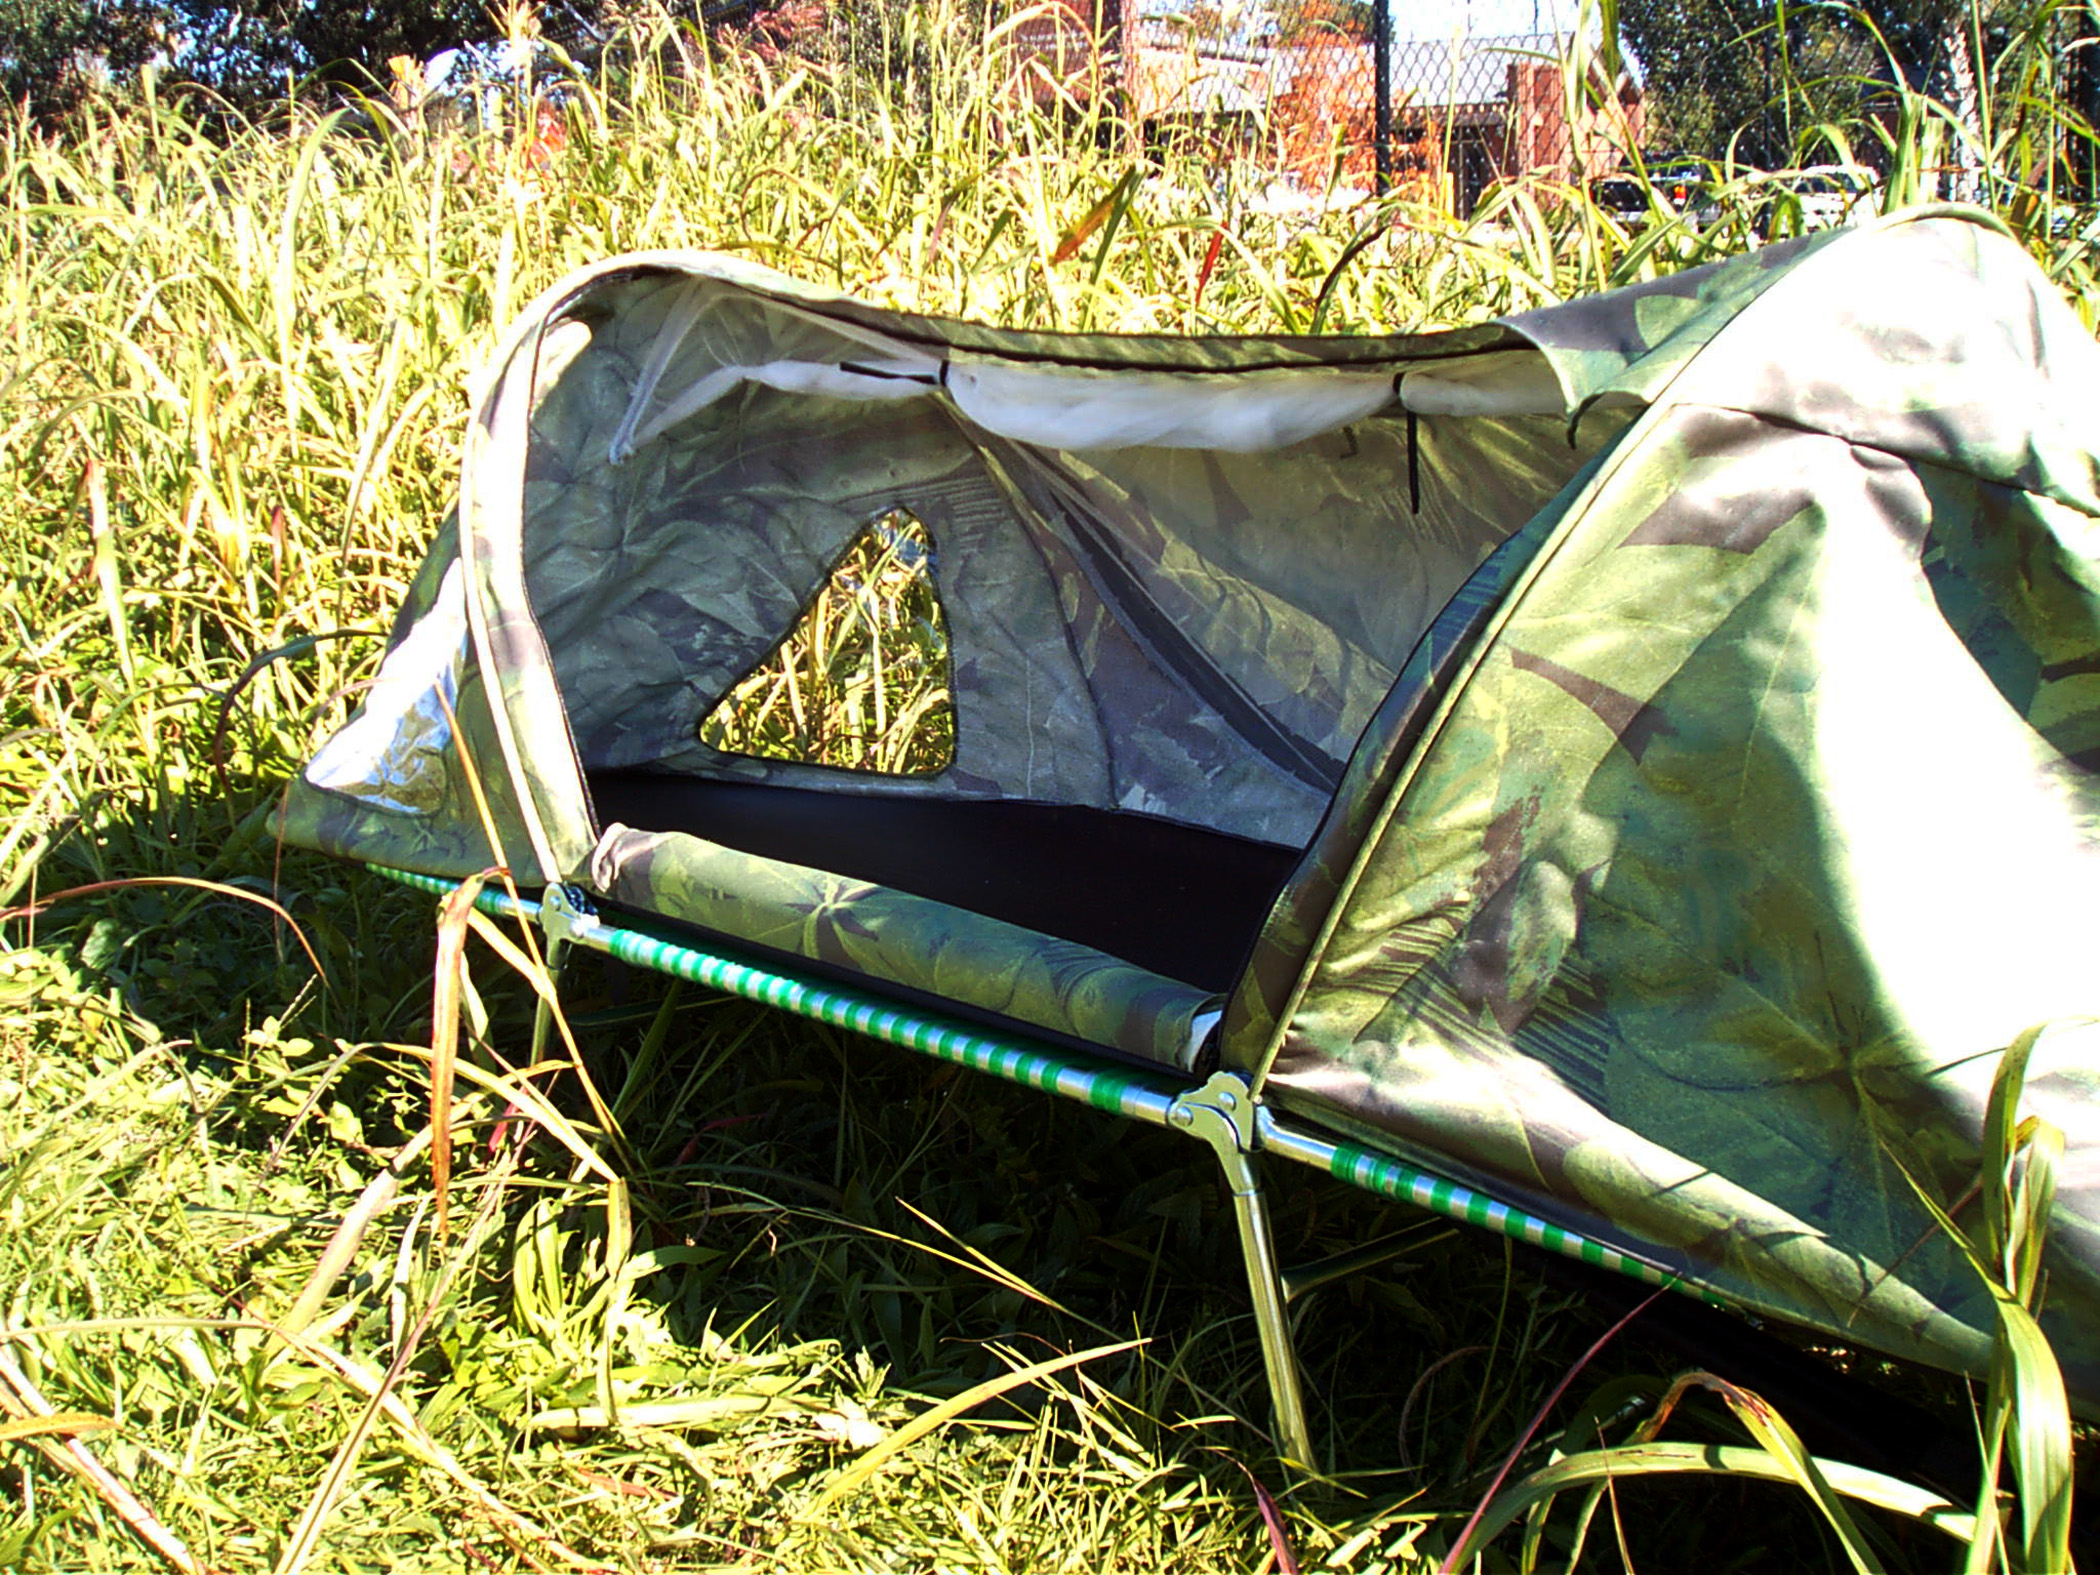 Portable Shelter for the Homeless by Charles Heydinger